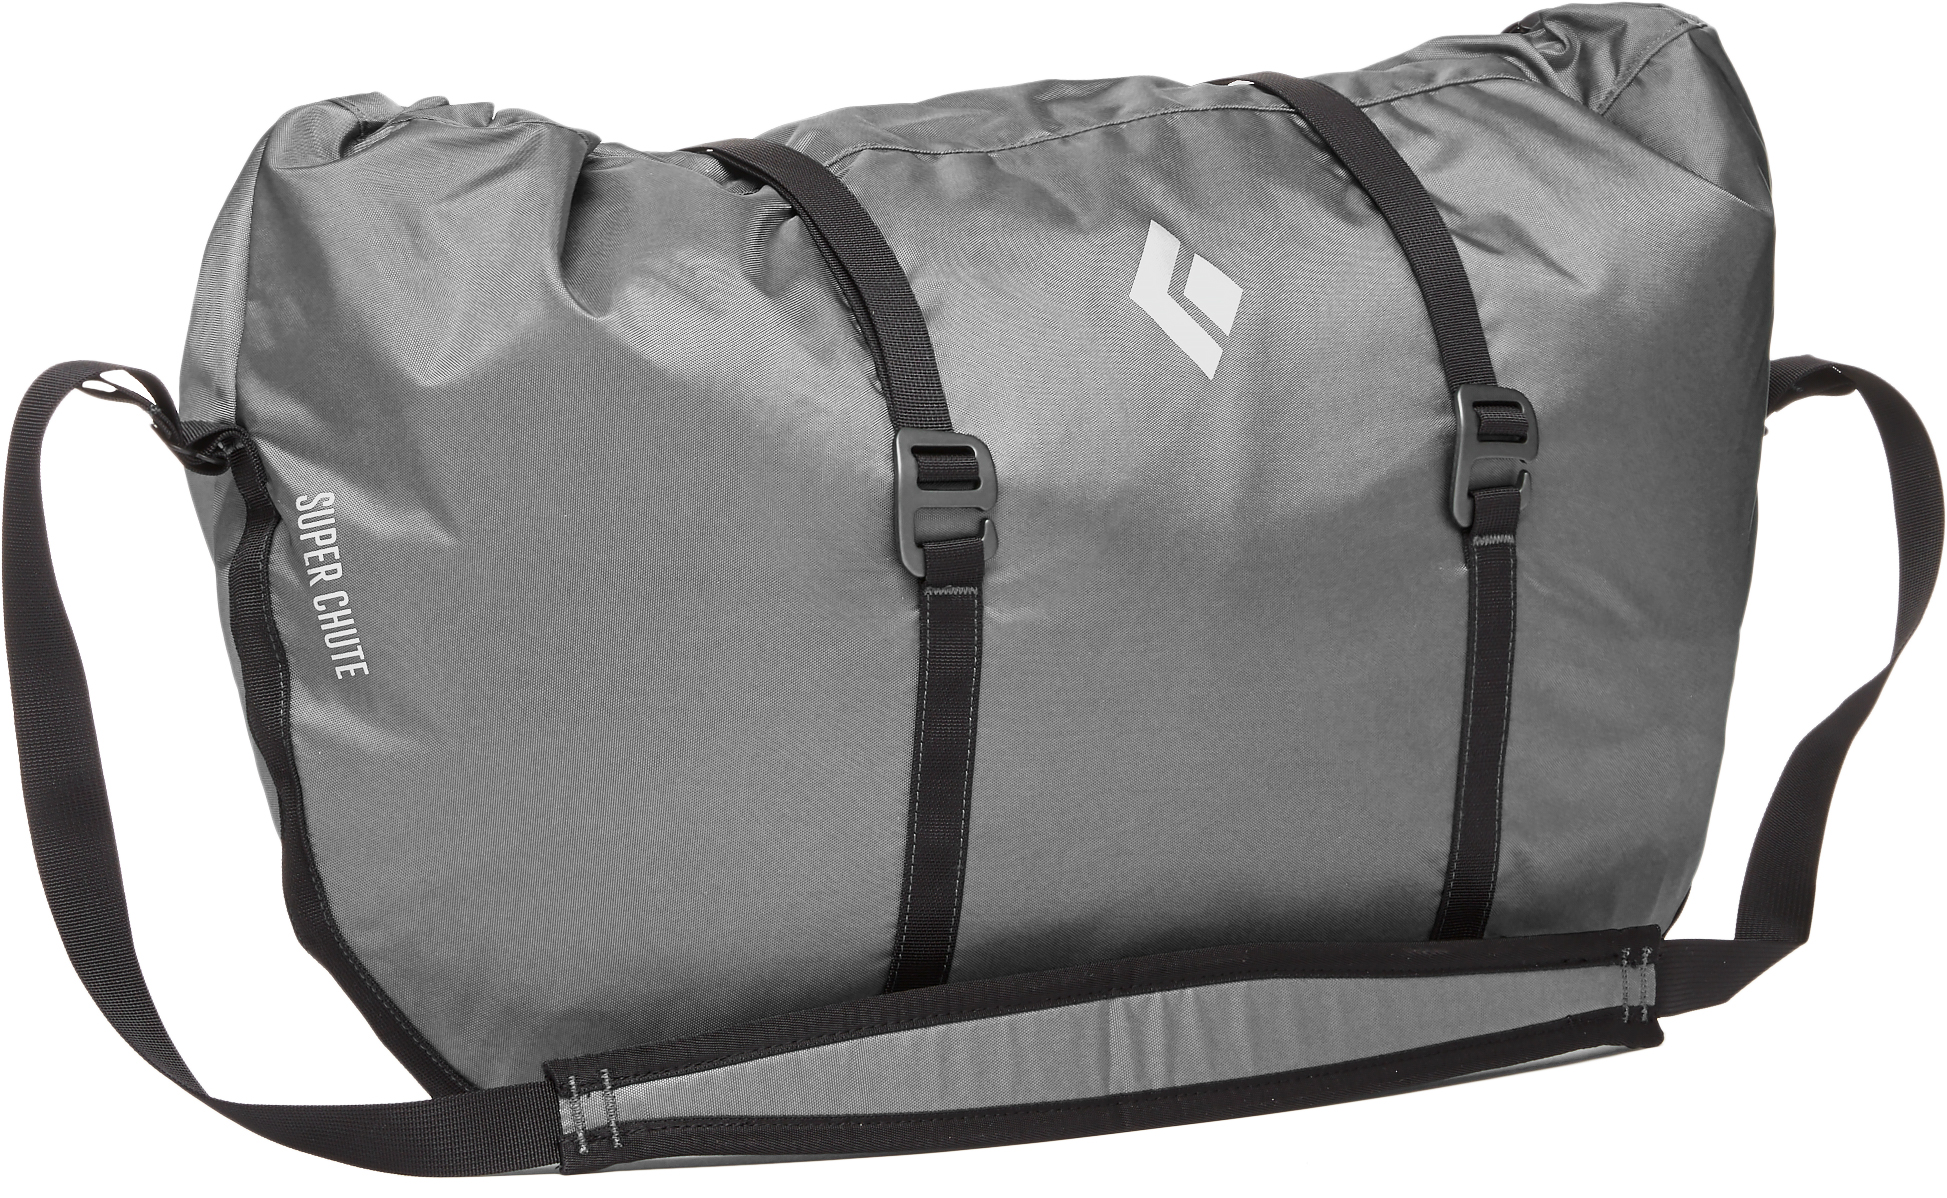 c39ad0cf4 Rope bags and accessories | MEC